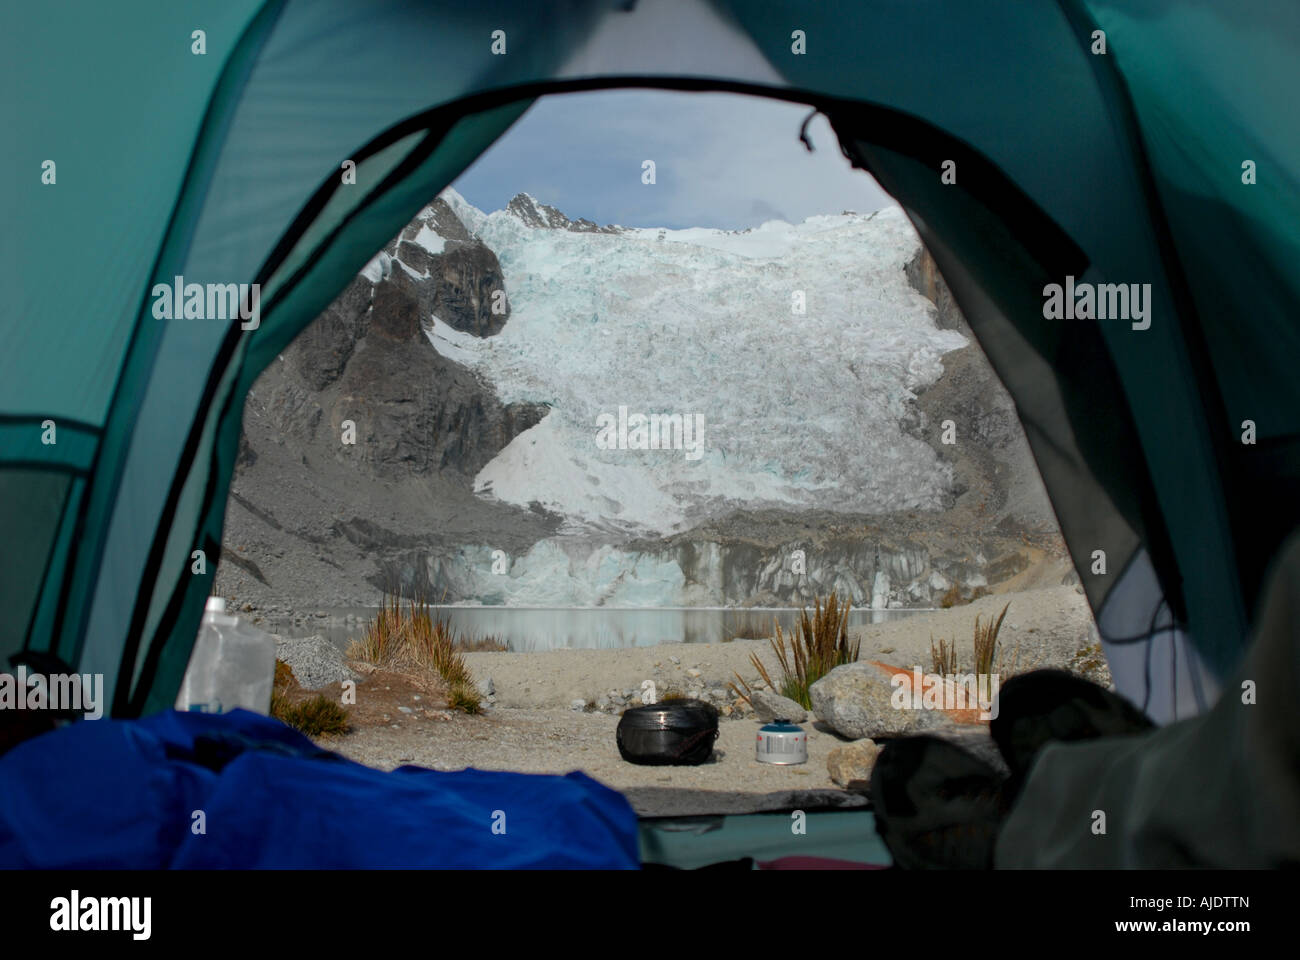 Lagunas Glaciar is seen from inside a tent at 5,038 meters located below Mount Illampu near Sorata, Bolivia, South - Stock Image